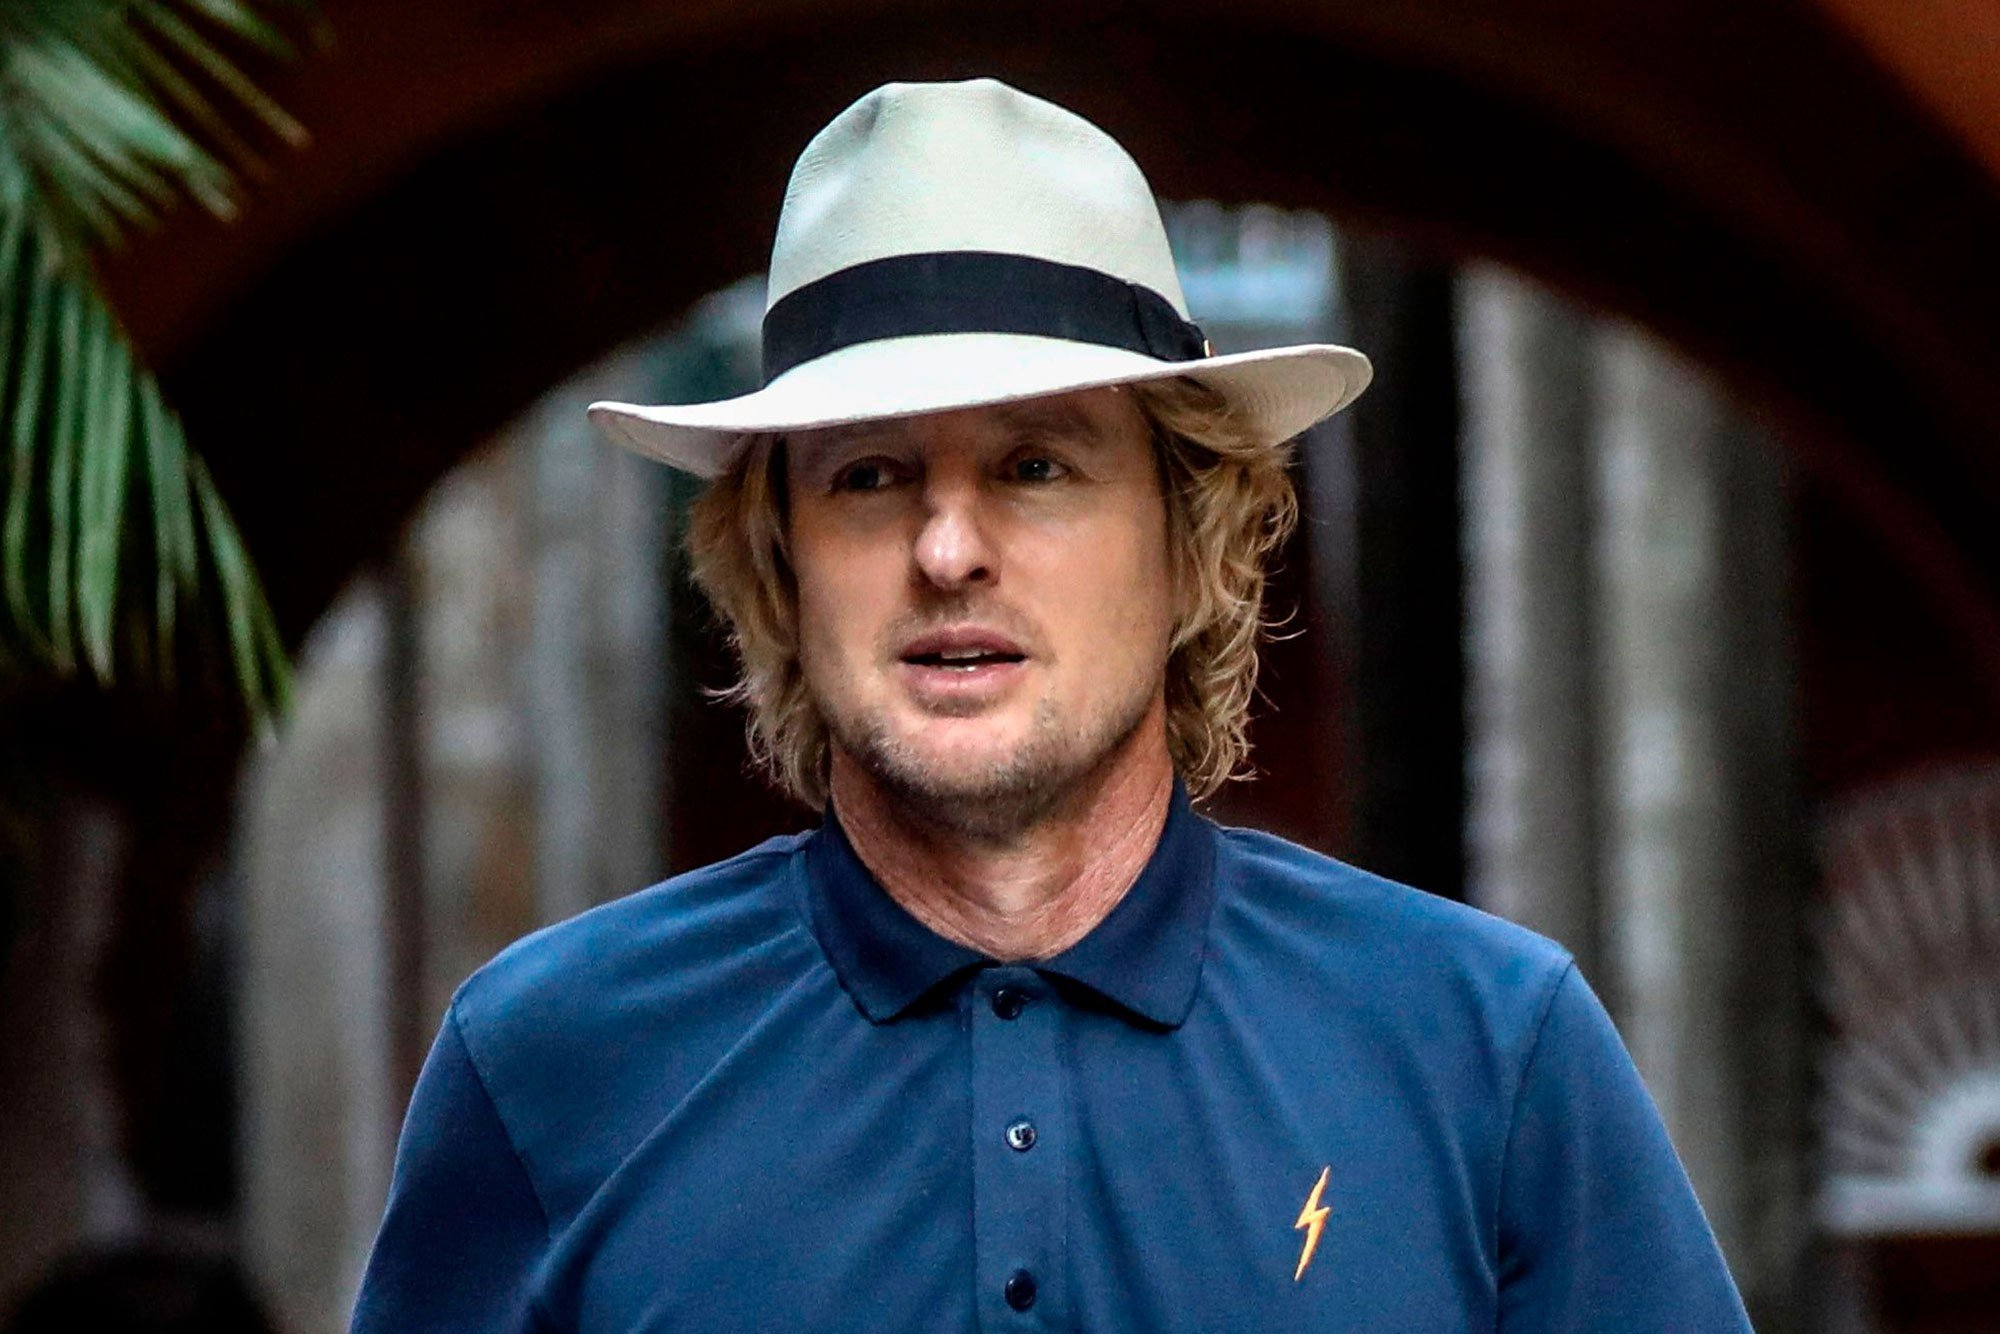 Owen Wilson causes hotel evacuation with cigarette